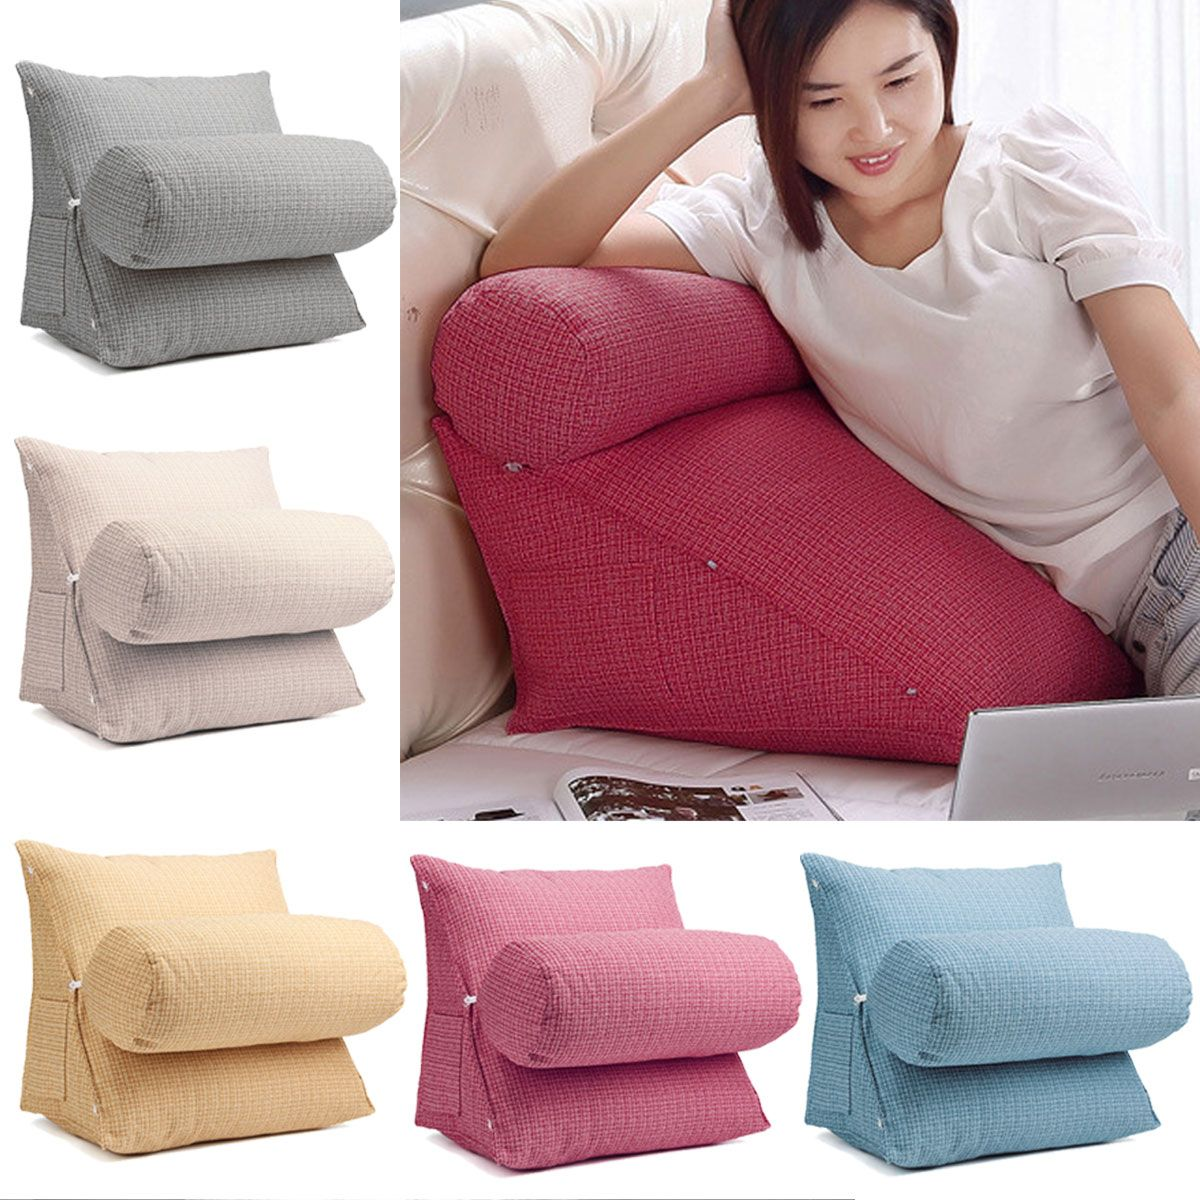 Kadell Adjustable Back Wedge Micro Plush Bedrest Cushion Pillow Sofa Bed Office Chair Rest Waist Neck Support Walmart Com In 2020 Sofa Pillows Sofa Bed Office Cushions On Sofa